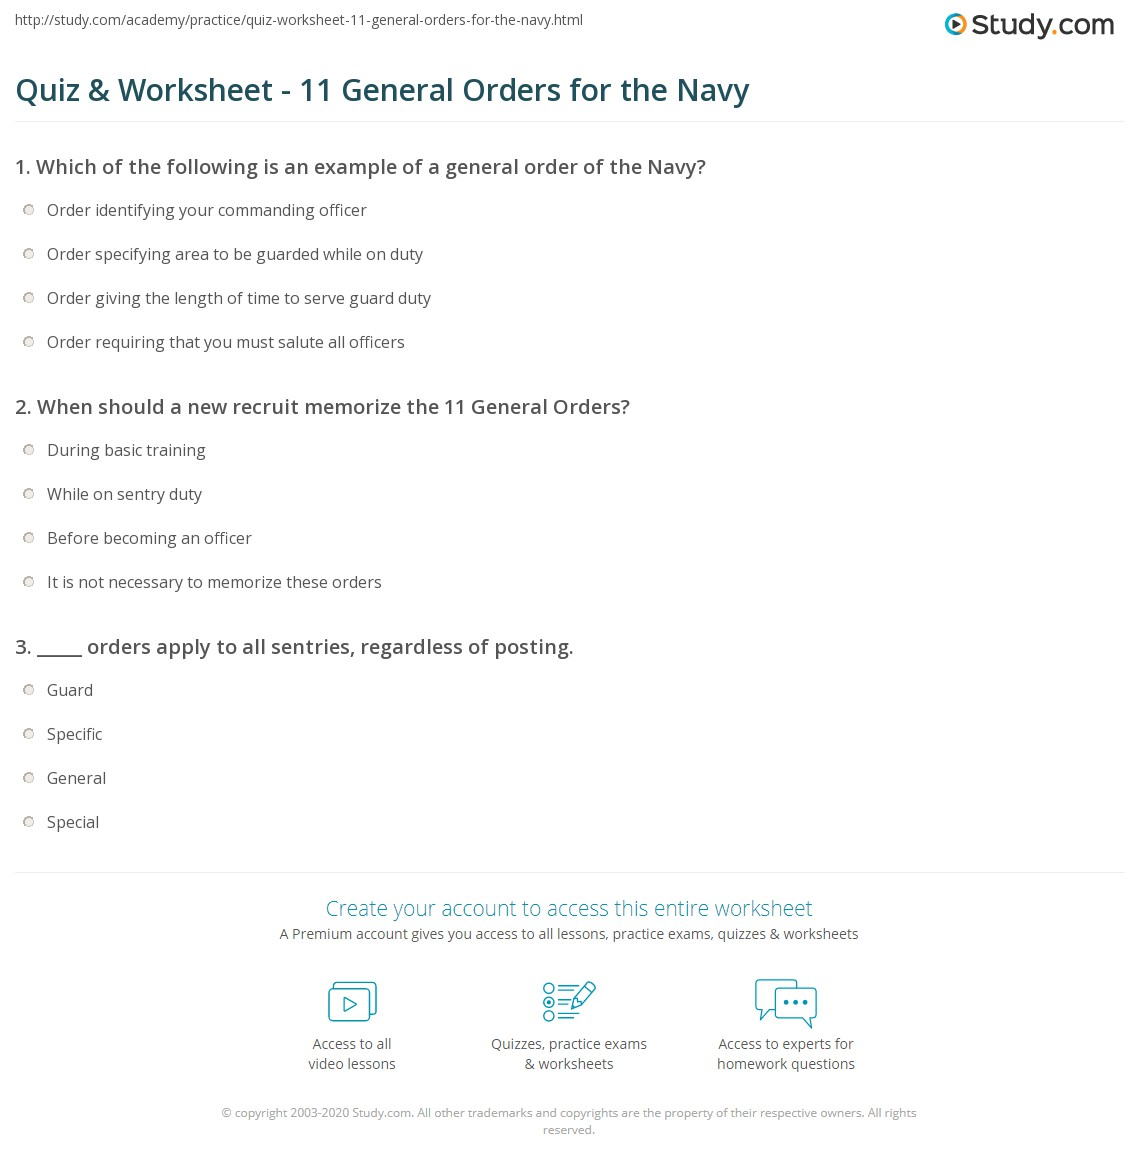 Quiz & Worksheet - 11 General Orders for the Navy | Study.com